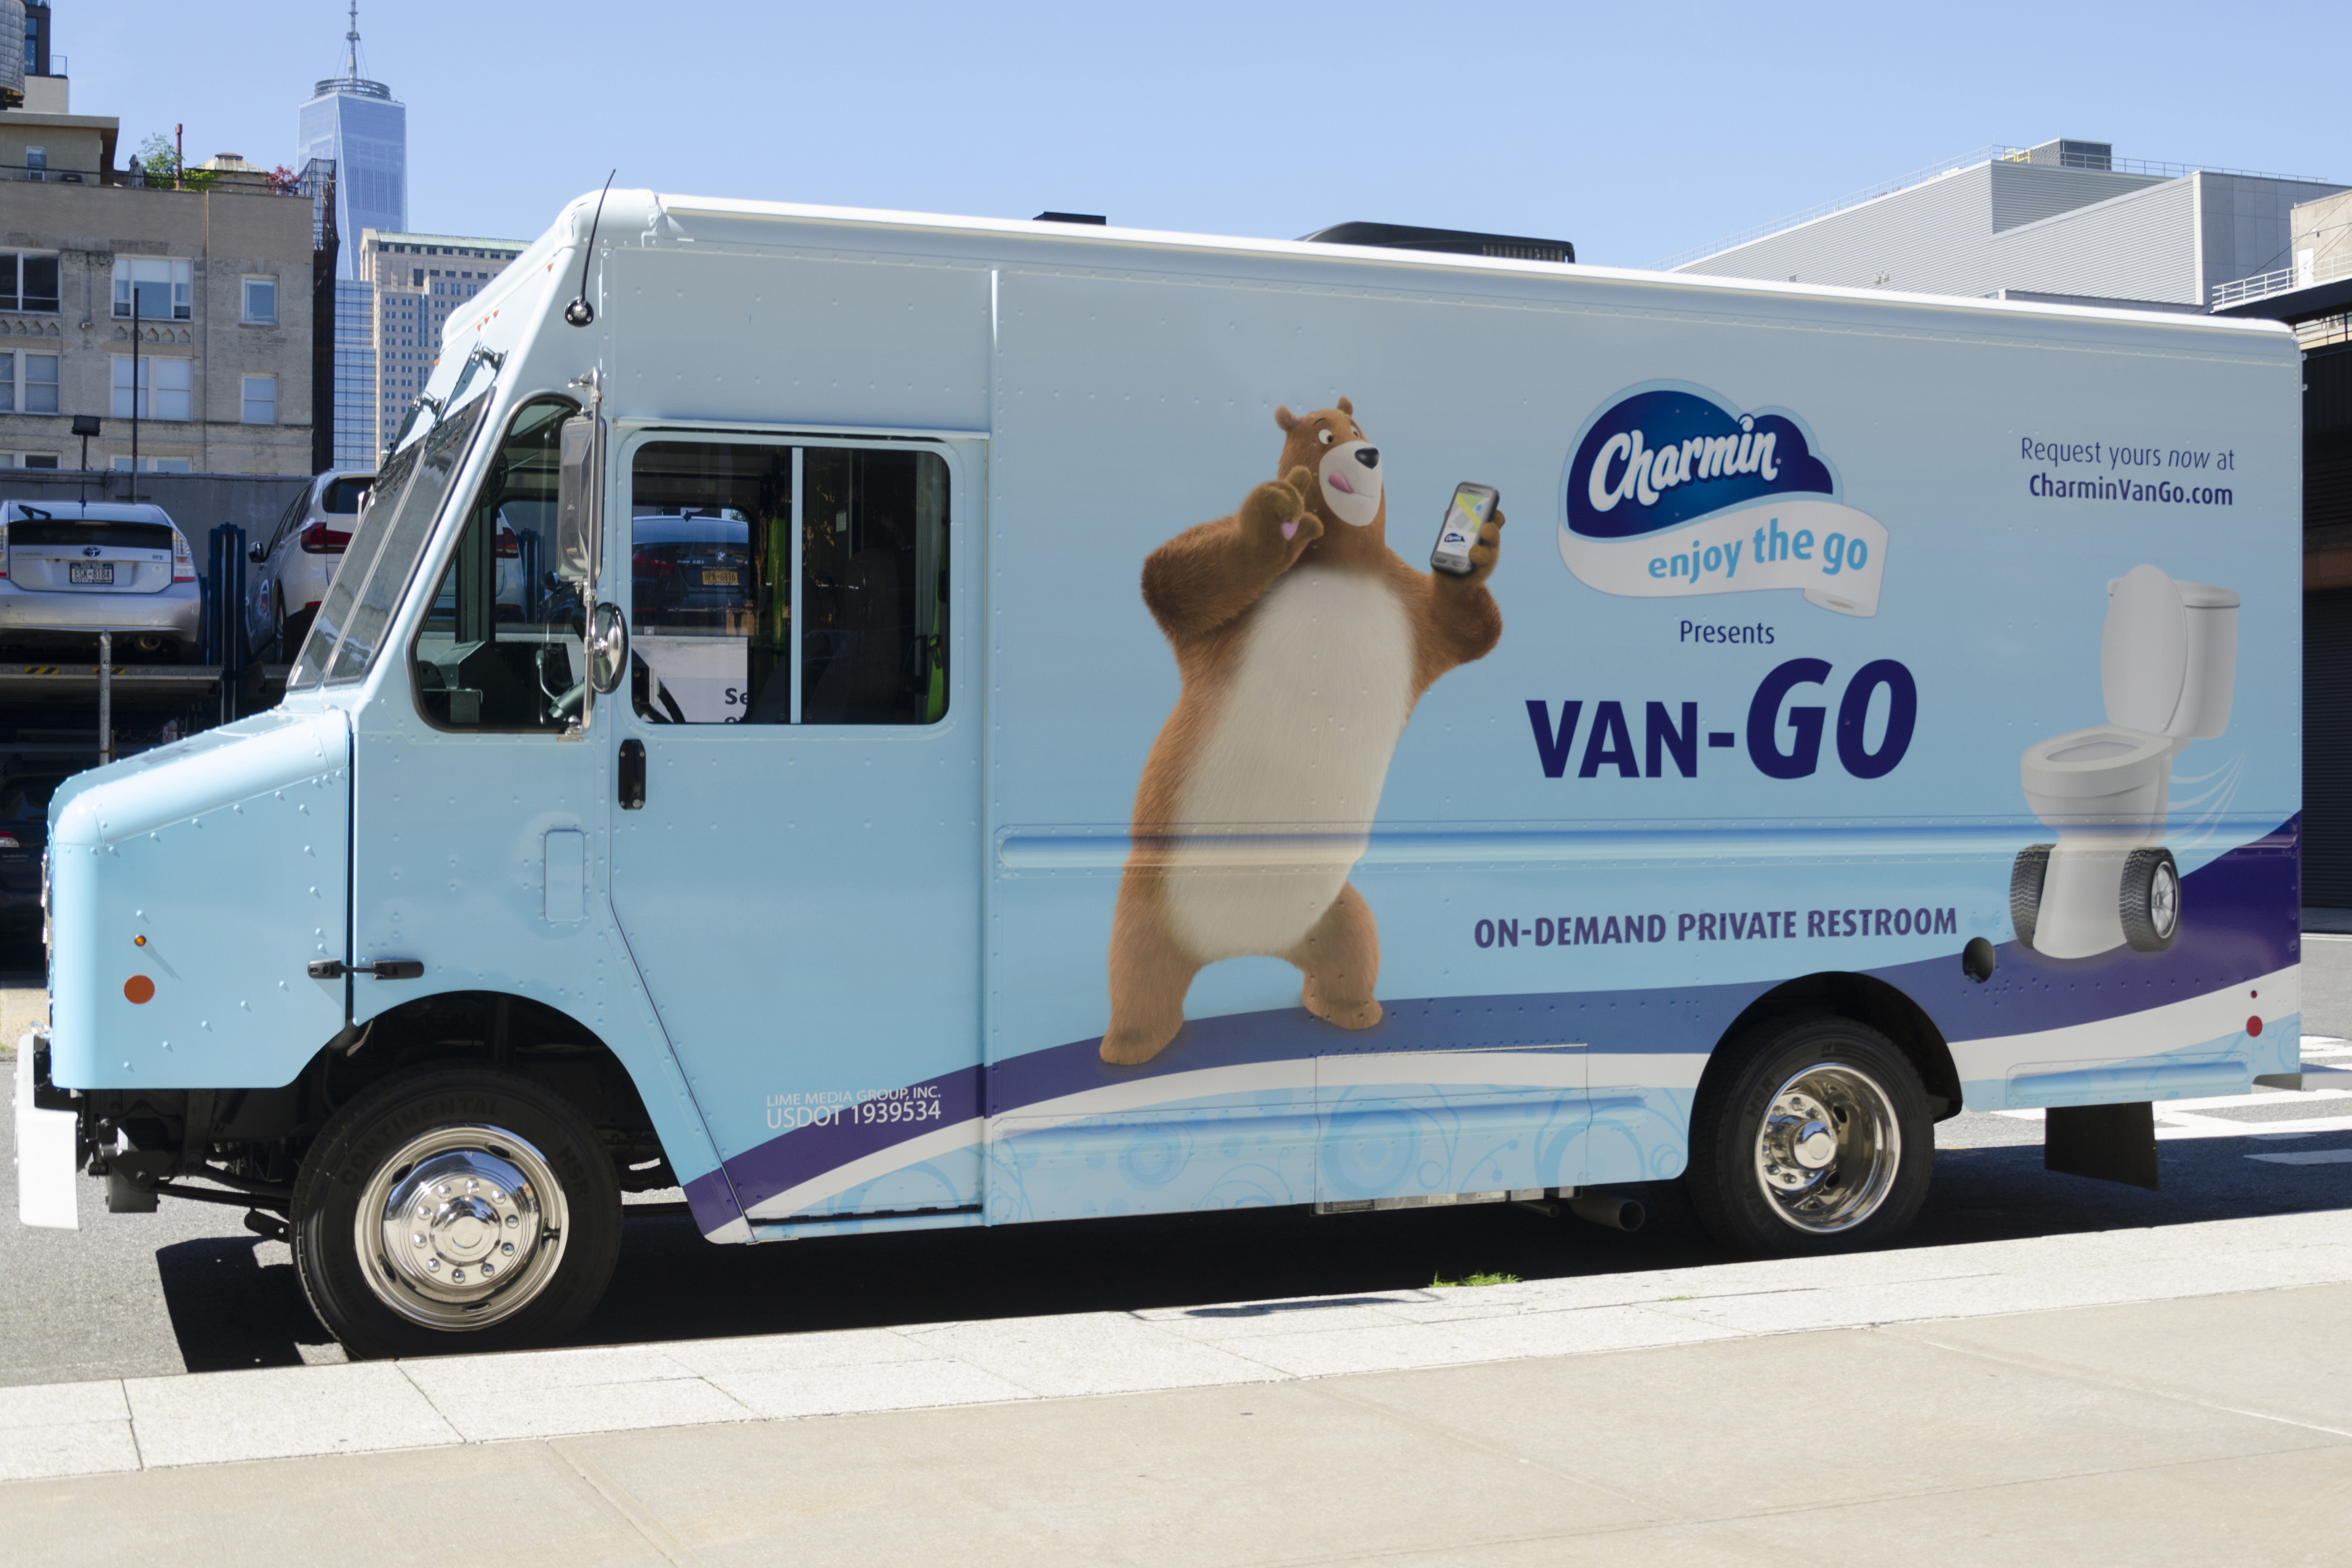 Charmin Van-GO will roll through New York City June 21 and June 22. (Photo: Business Wire)